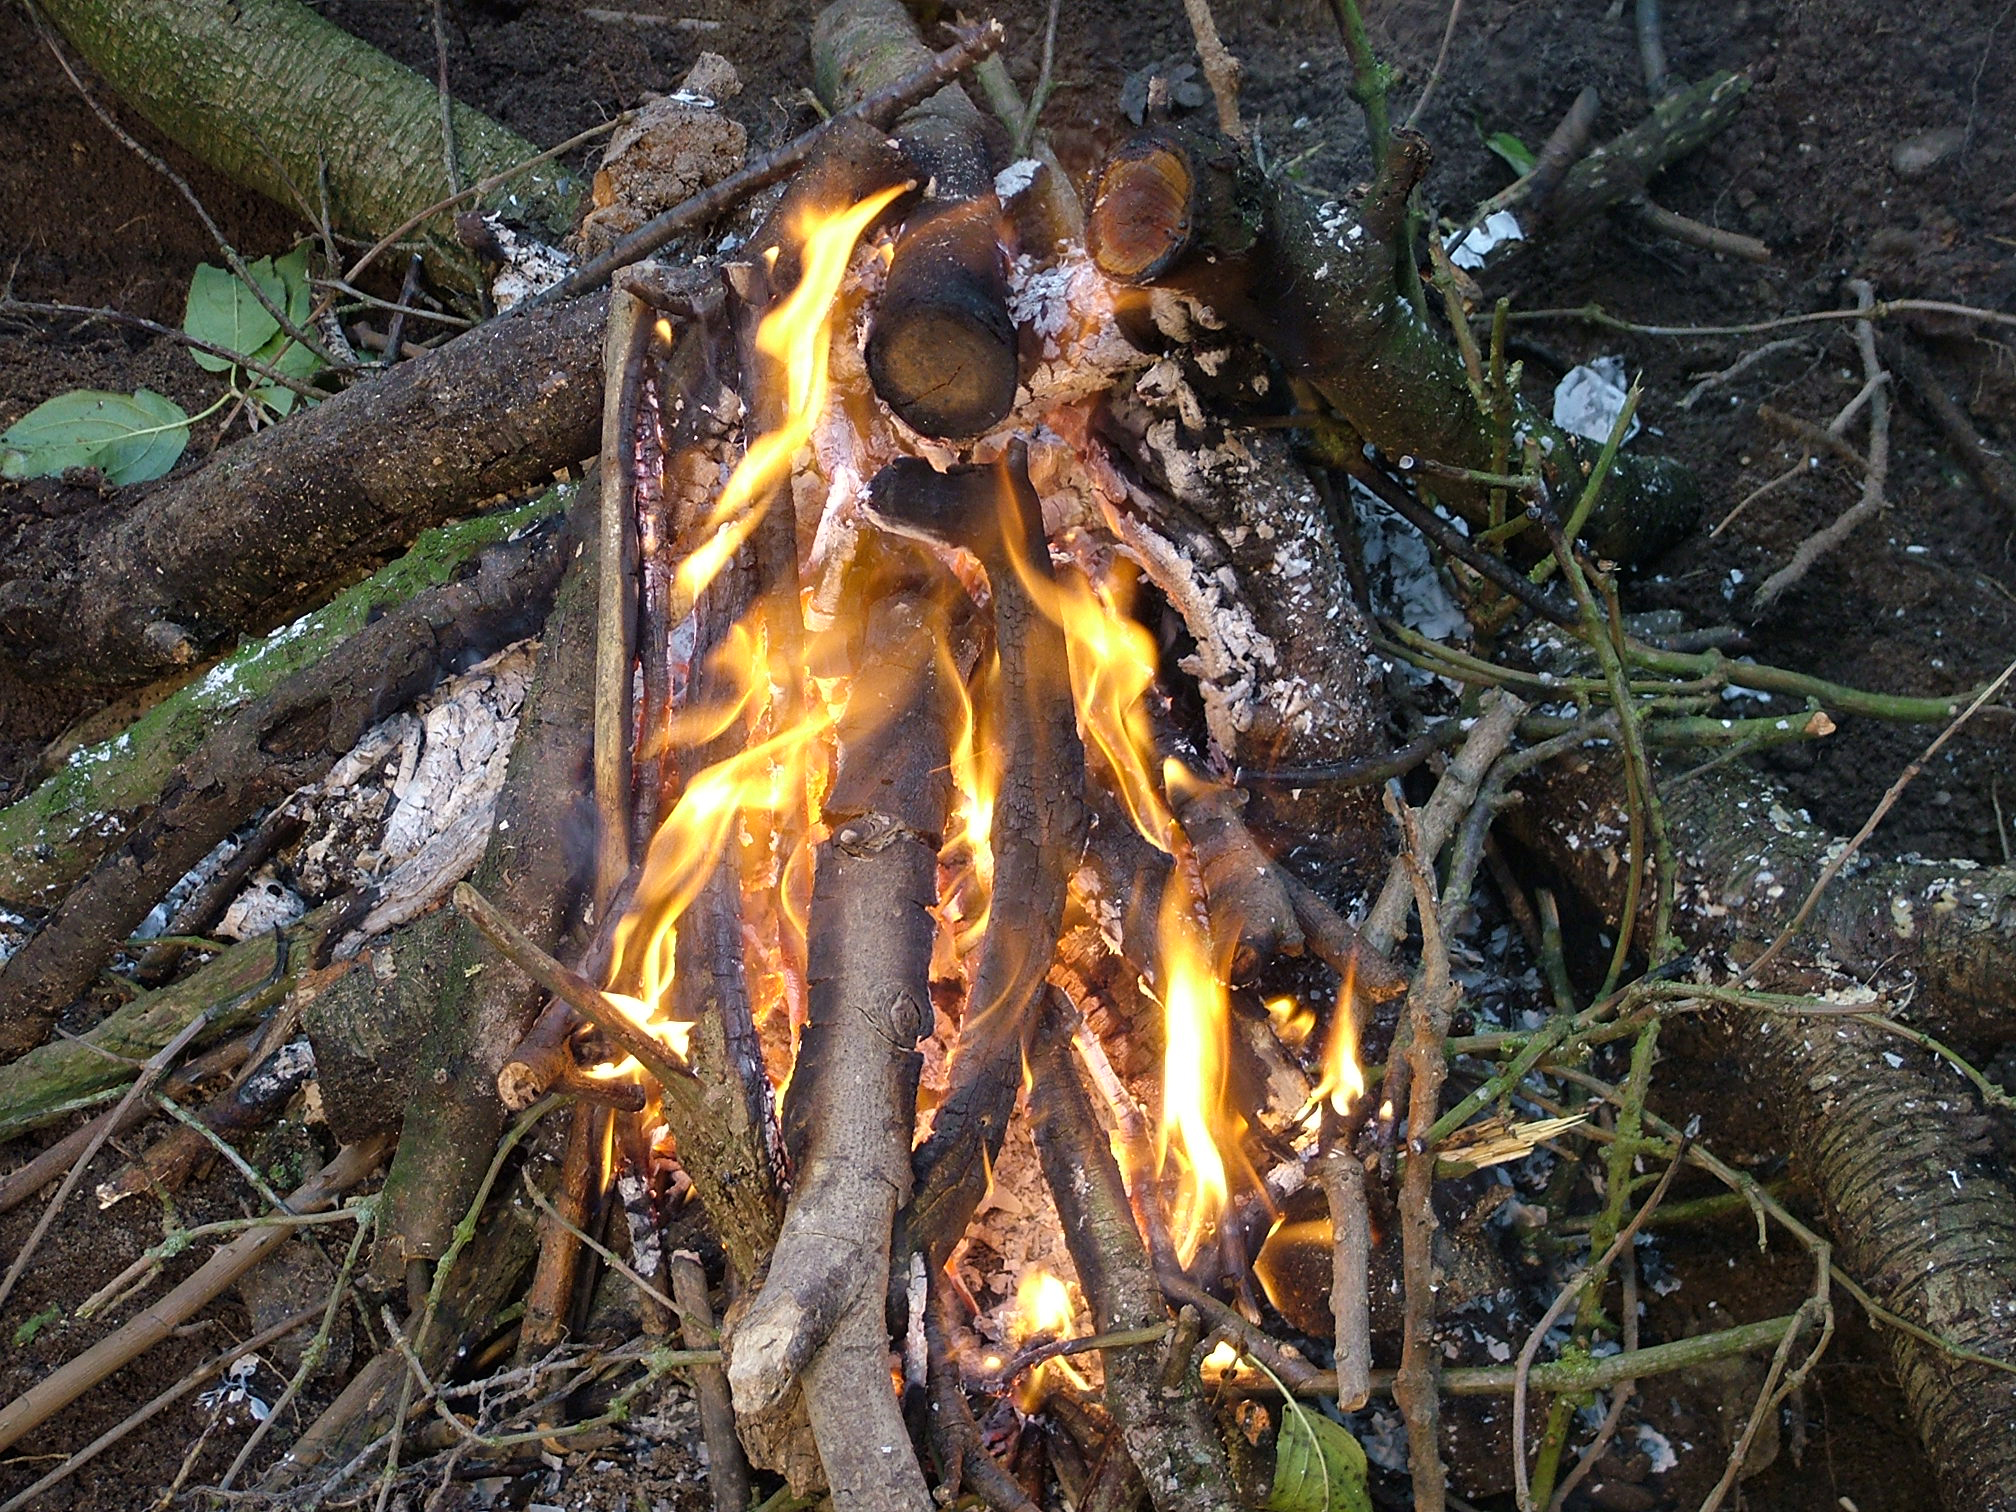 Once the fire is going, larger branches and twigs are added.